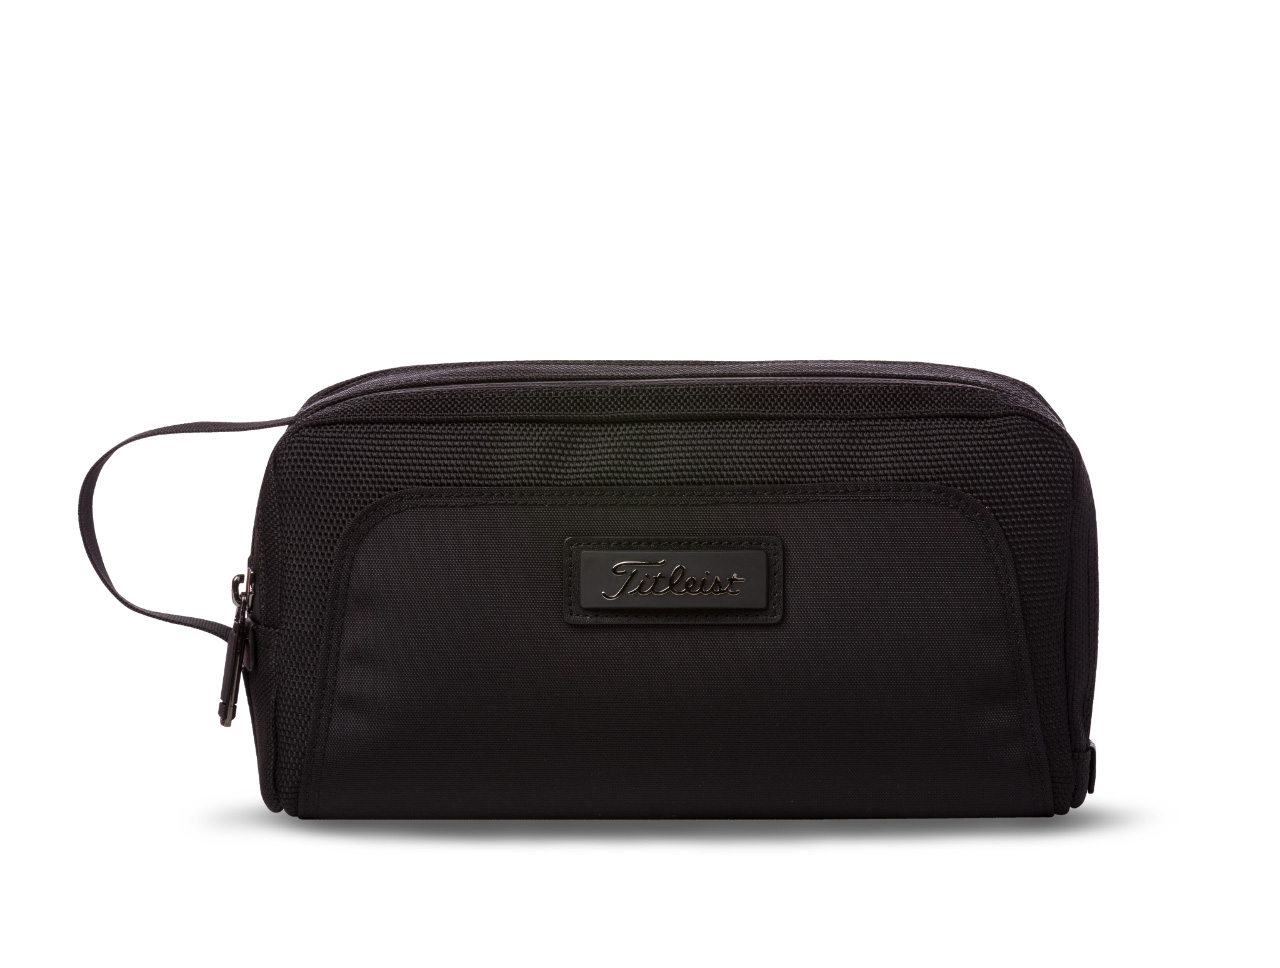 Titleist Professional Collection Large Dopp Kit